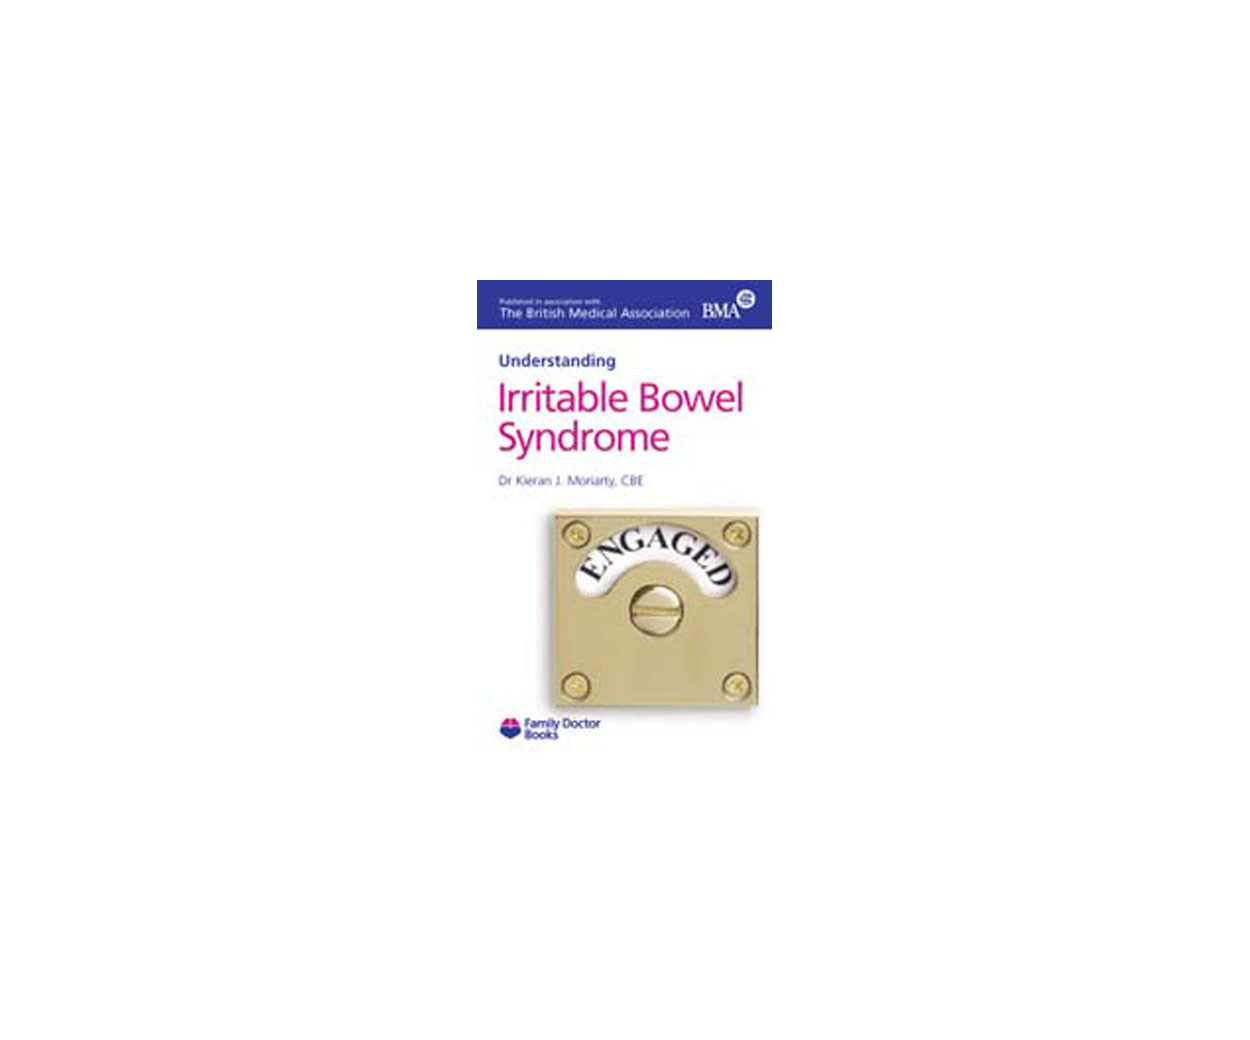 Understanding Irritable Bowel Syndrome - OUT OF STOCK